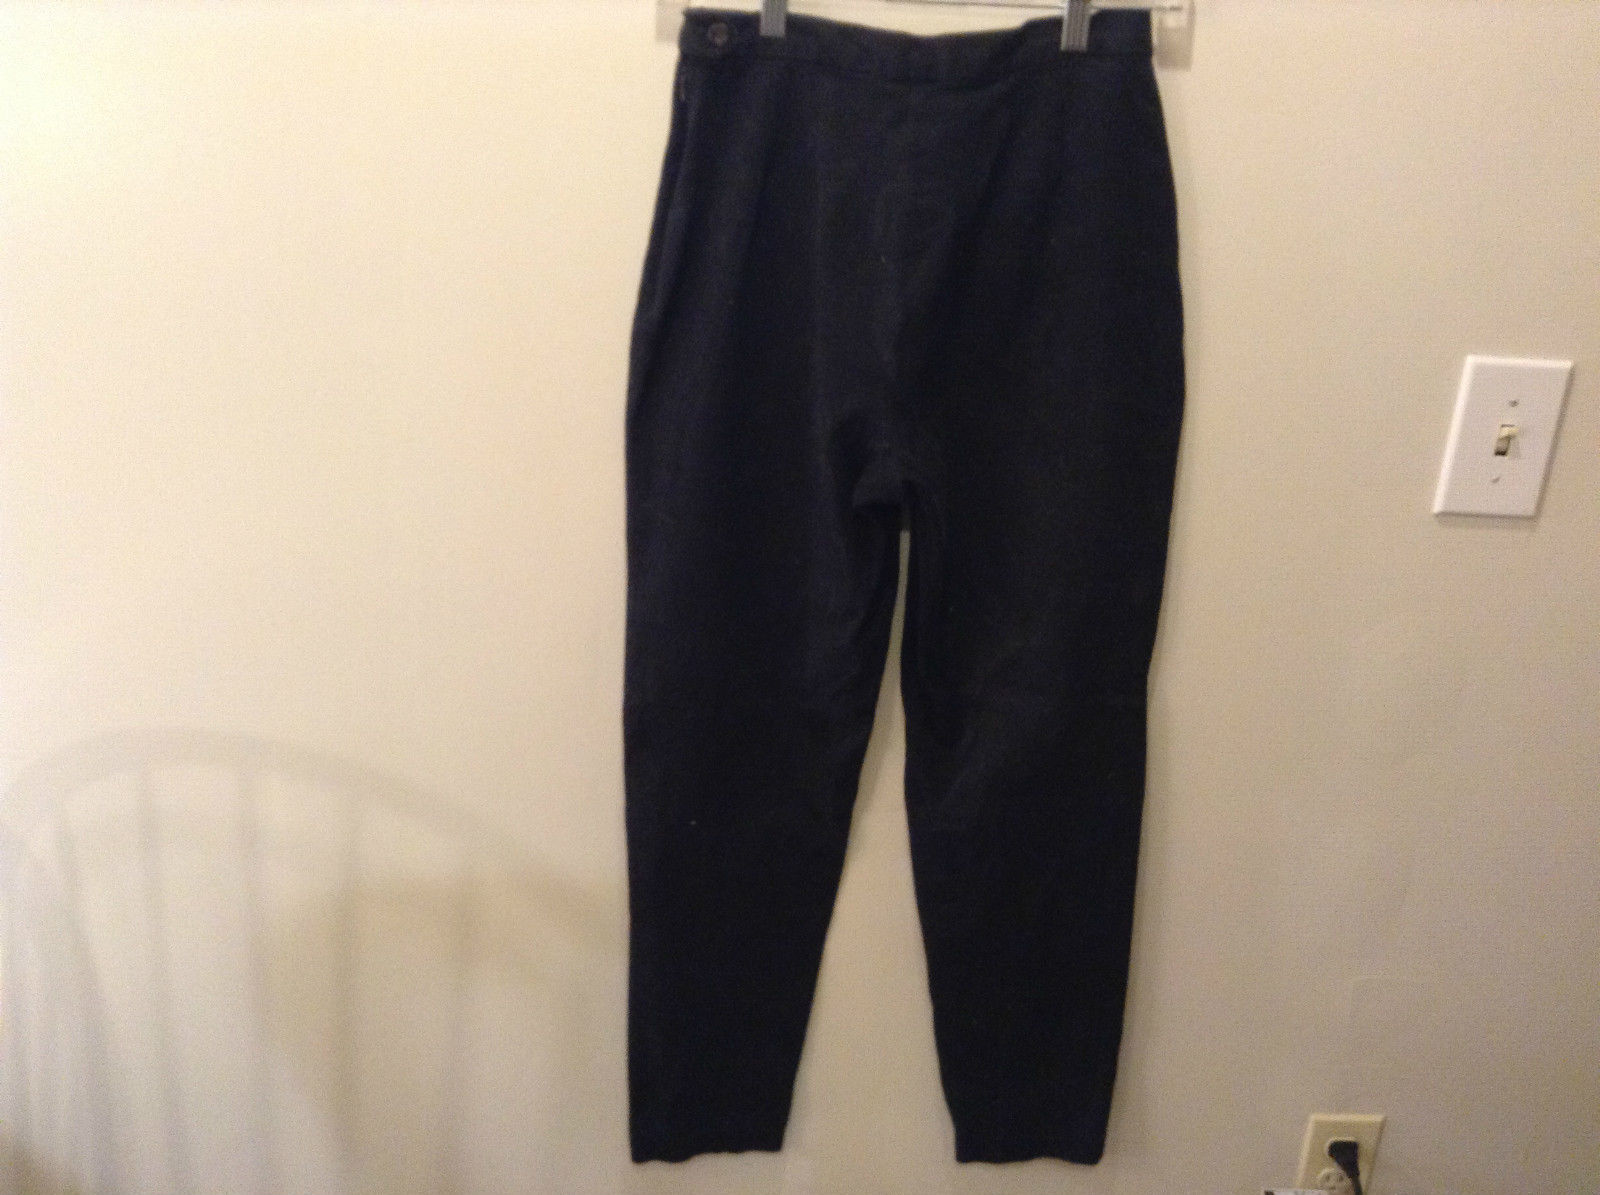 Black Cotton Blend Casual Pants Gap Size 8 Great Condition